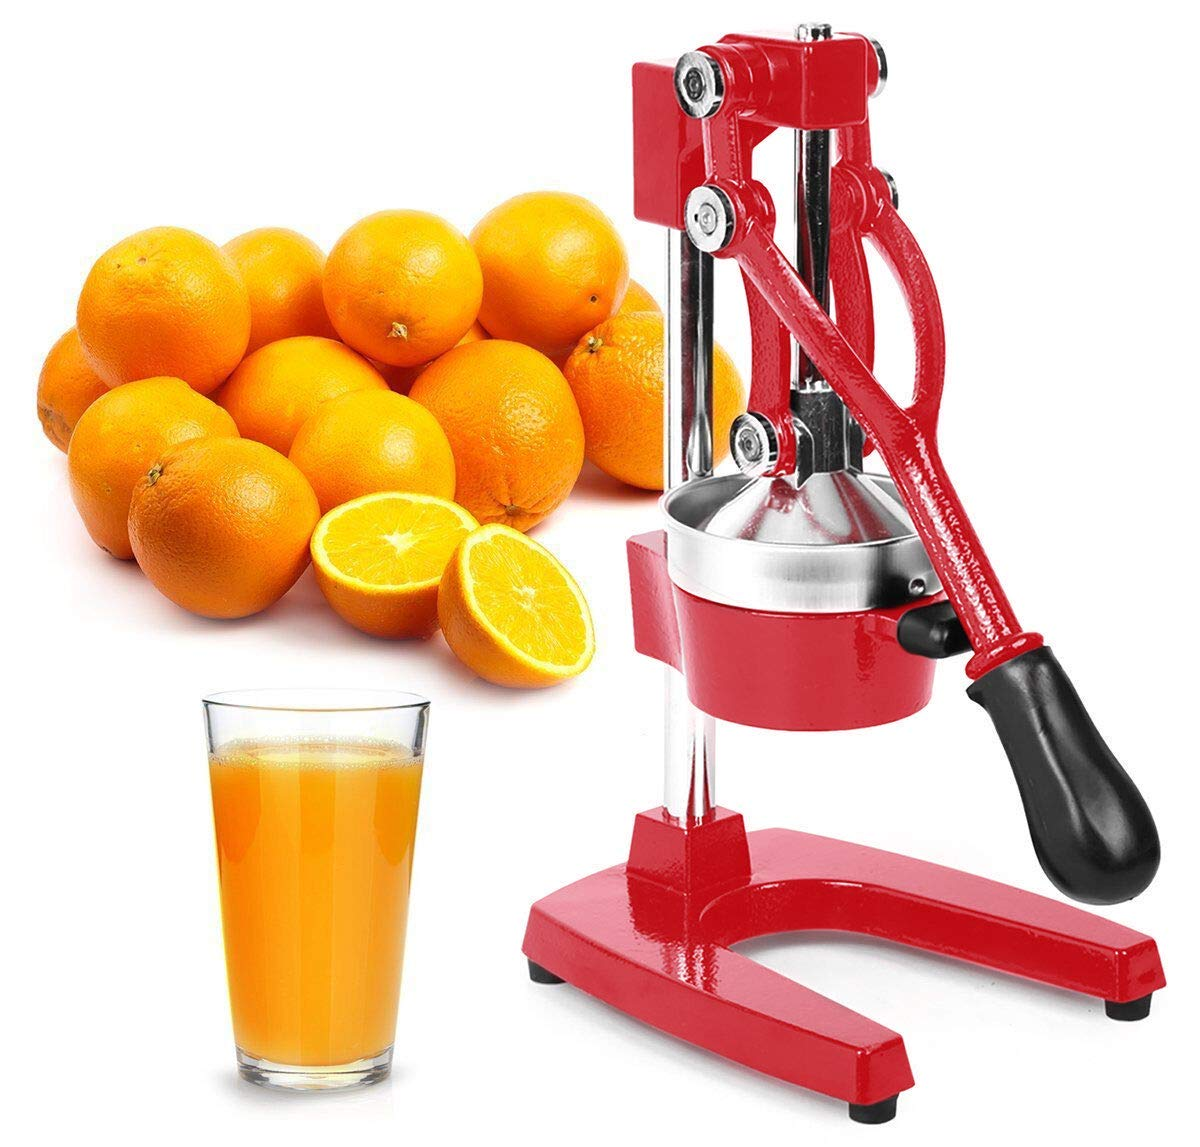 Zulay Professional Citrus Juicer - Manual Citrus Press and Orange Squeezer - Metal Lemon Squeezer - Premium Quality Heavy Duty Manual Orange Juicer and Lime Squeezer Press Stand, Red (Renewed) by Zulay Kitchen